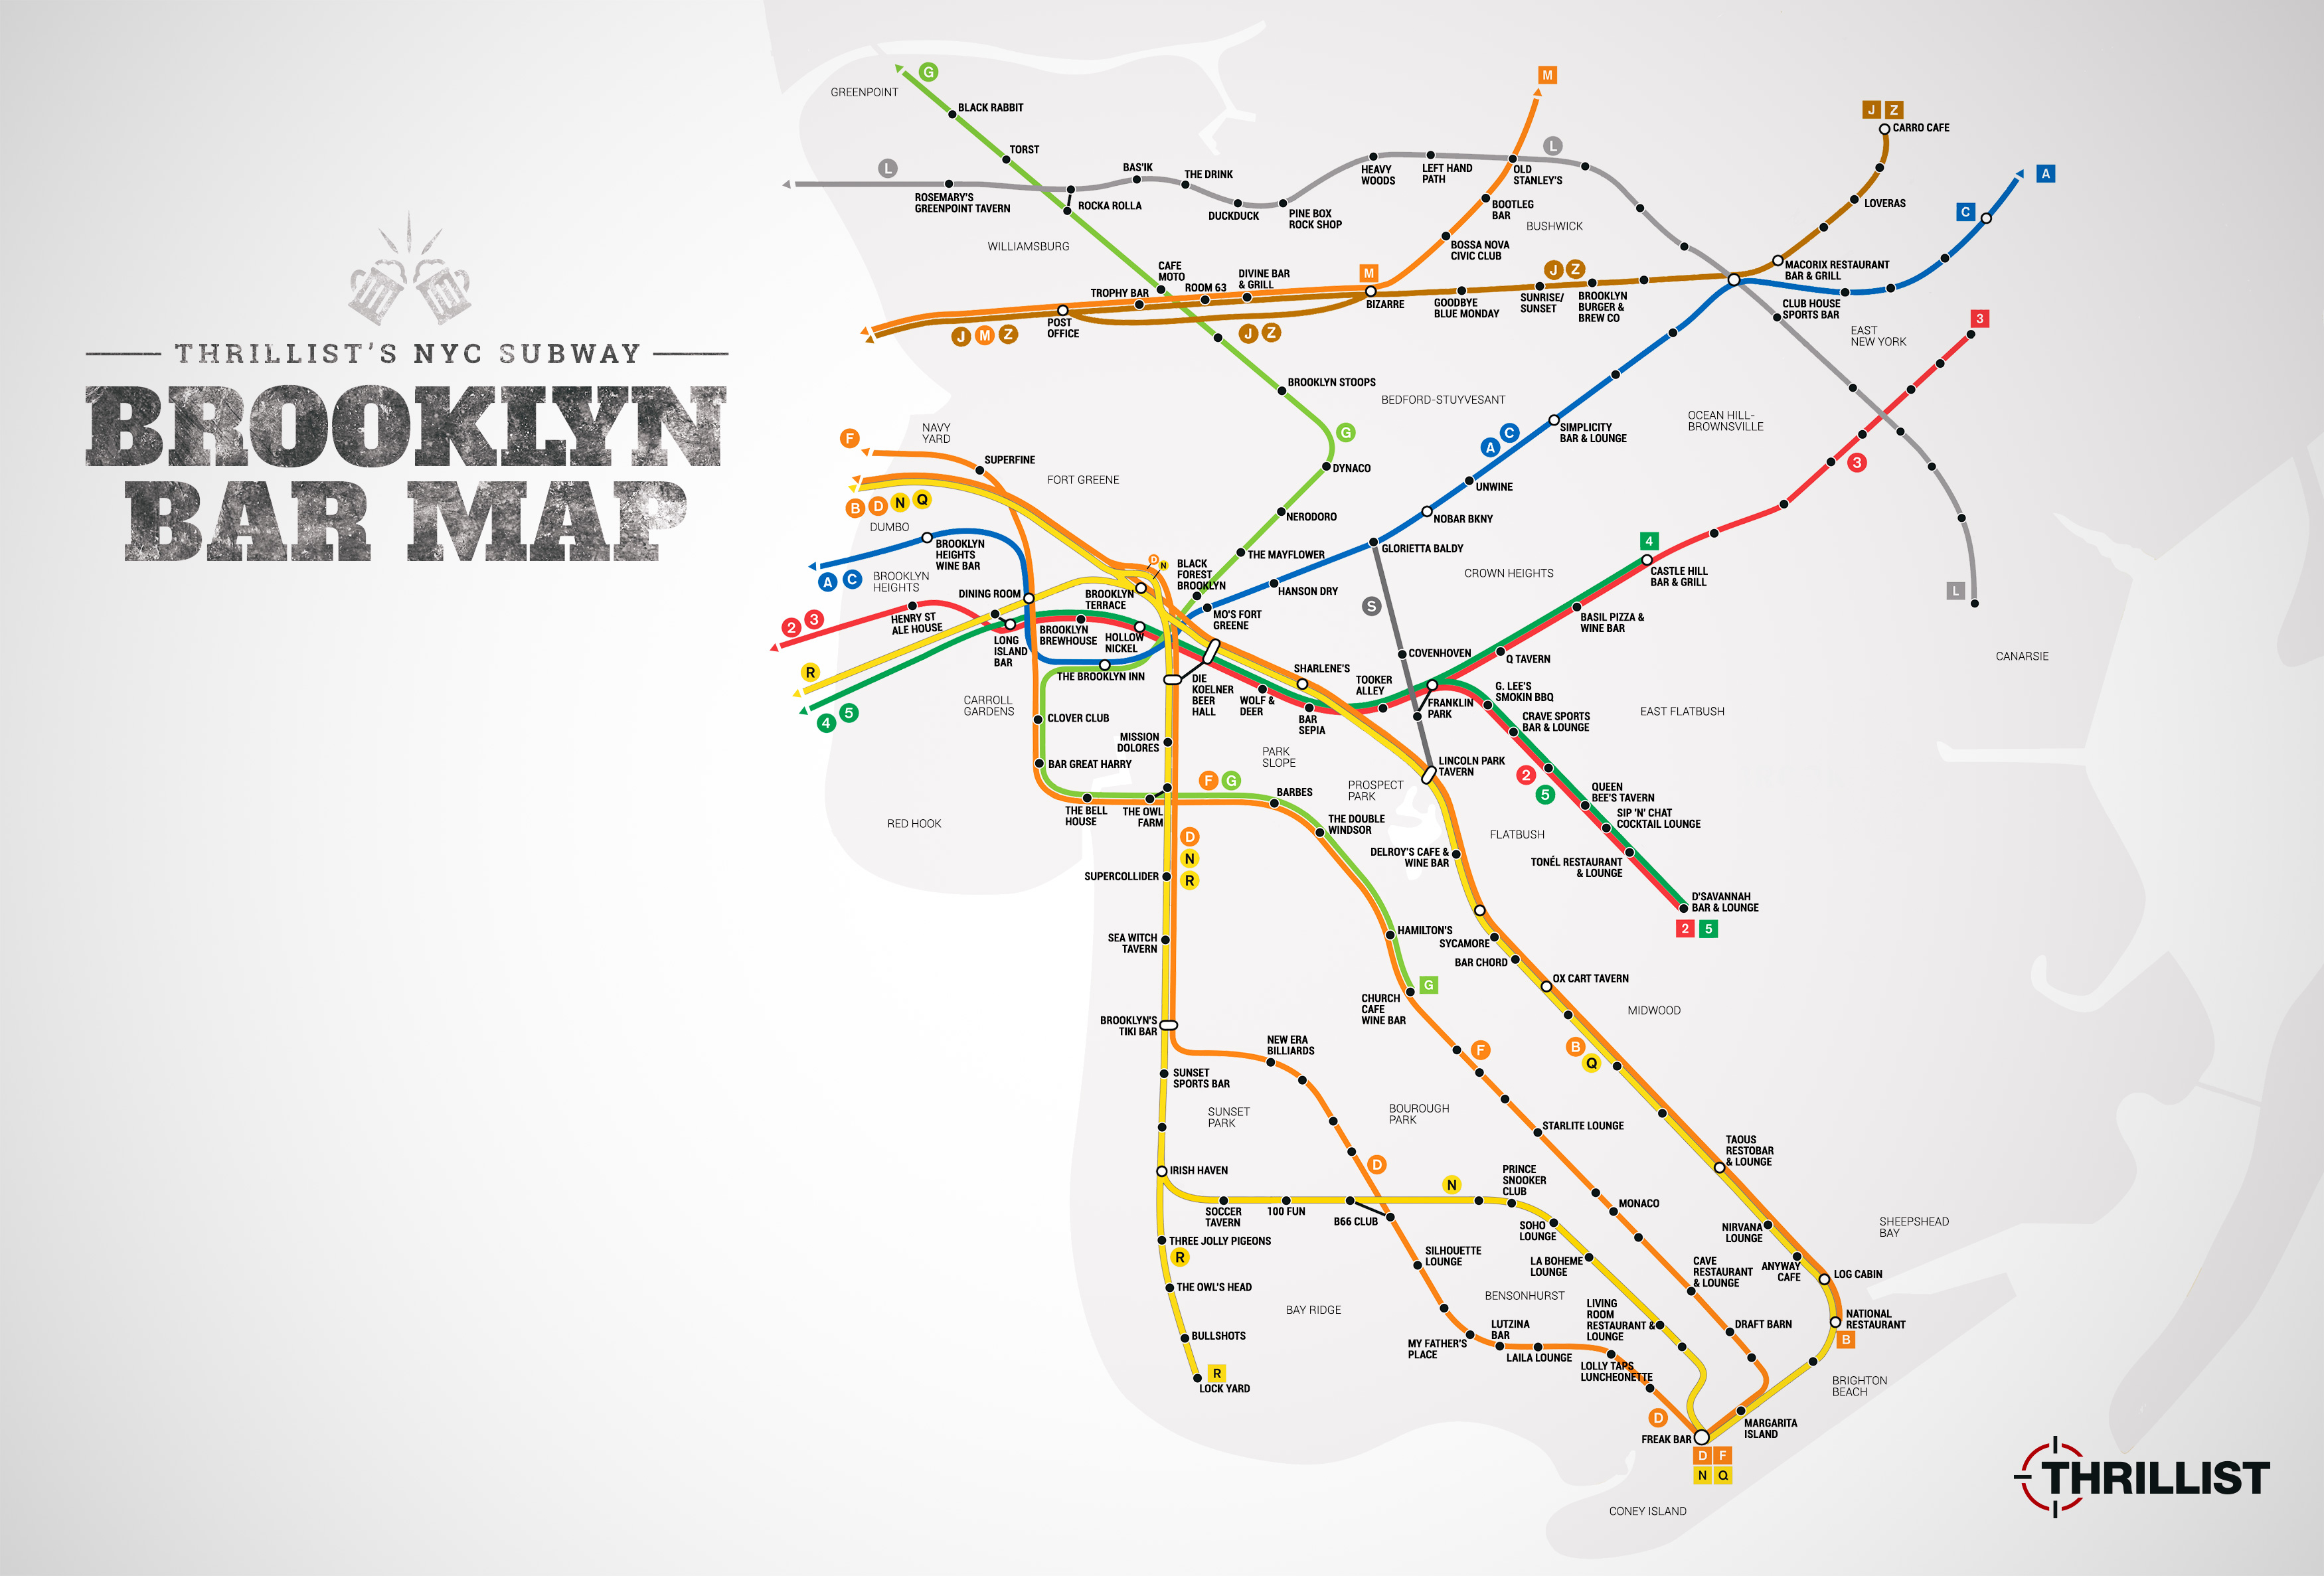 Brooklyn Subway Map My Blog - Nyc subway map queens ny